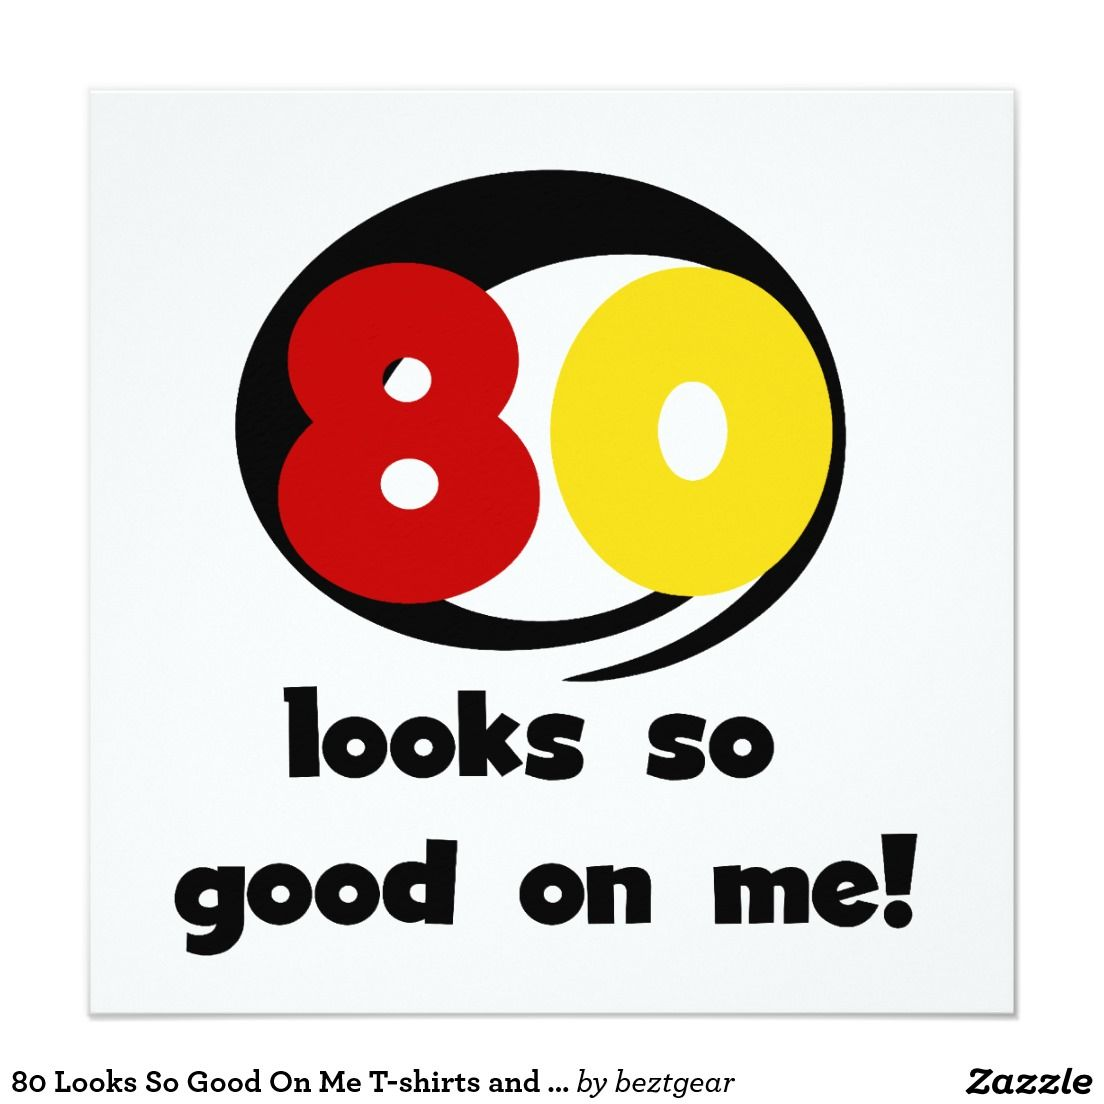 80 Looks So Good On Me T-shirts and Gifts Invitation | Open house ...